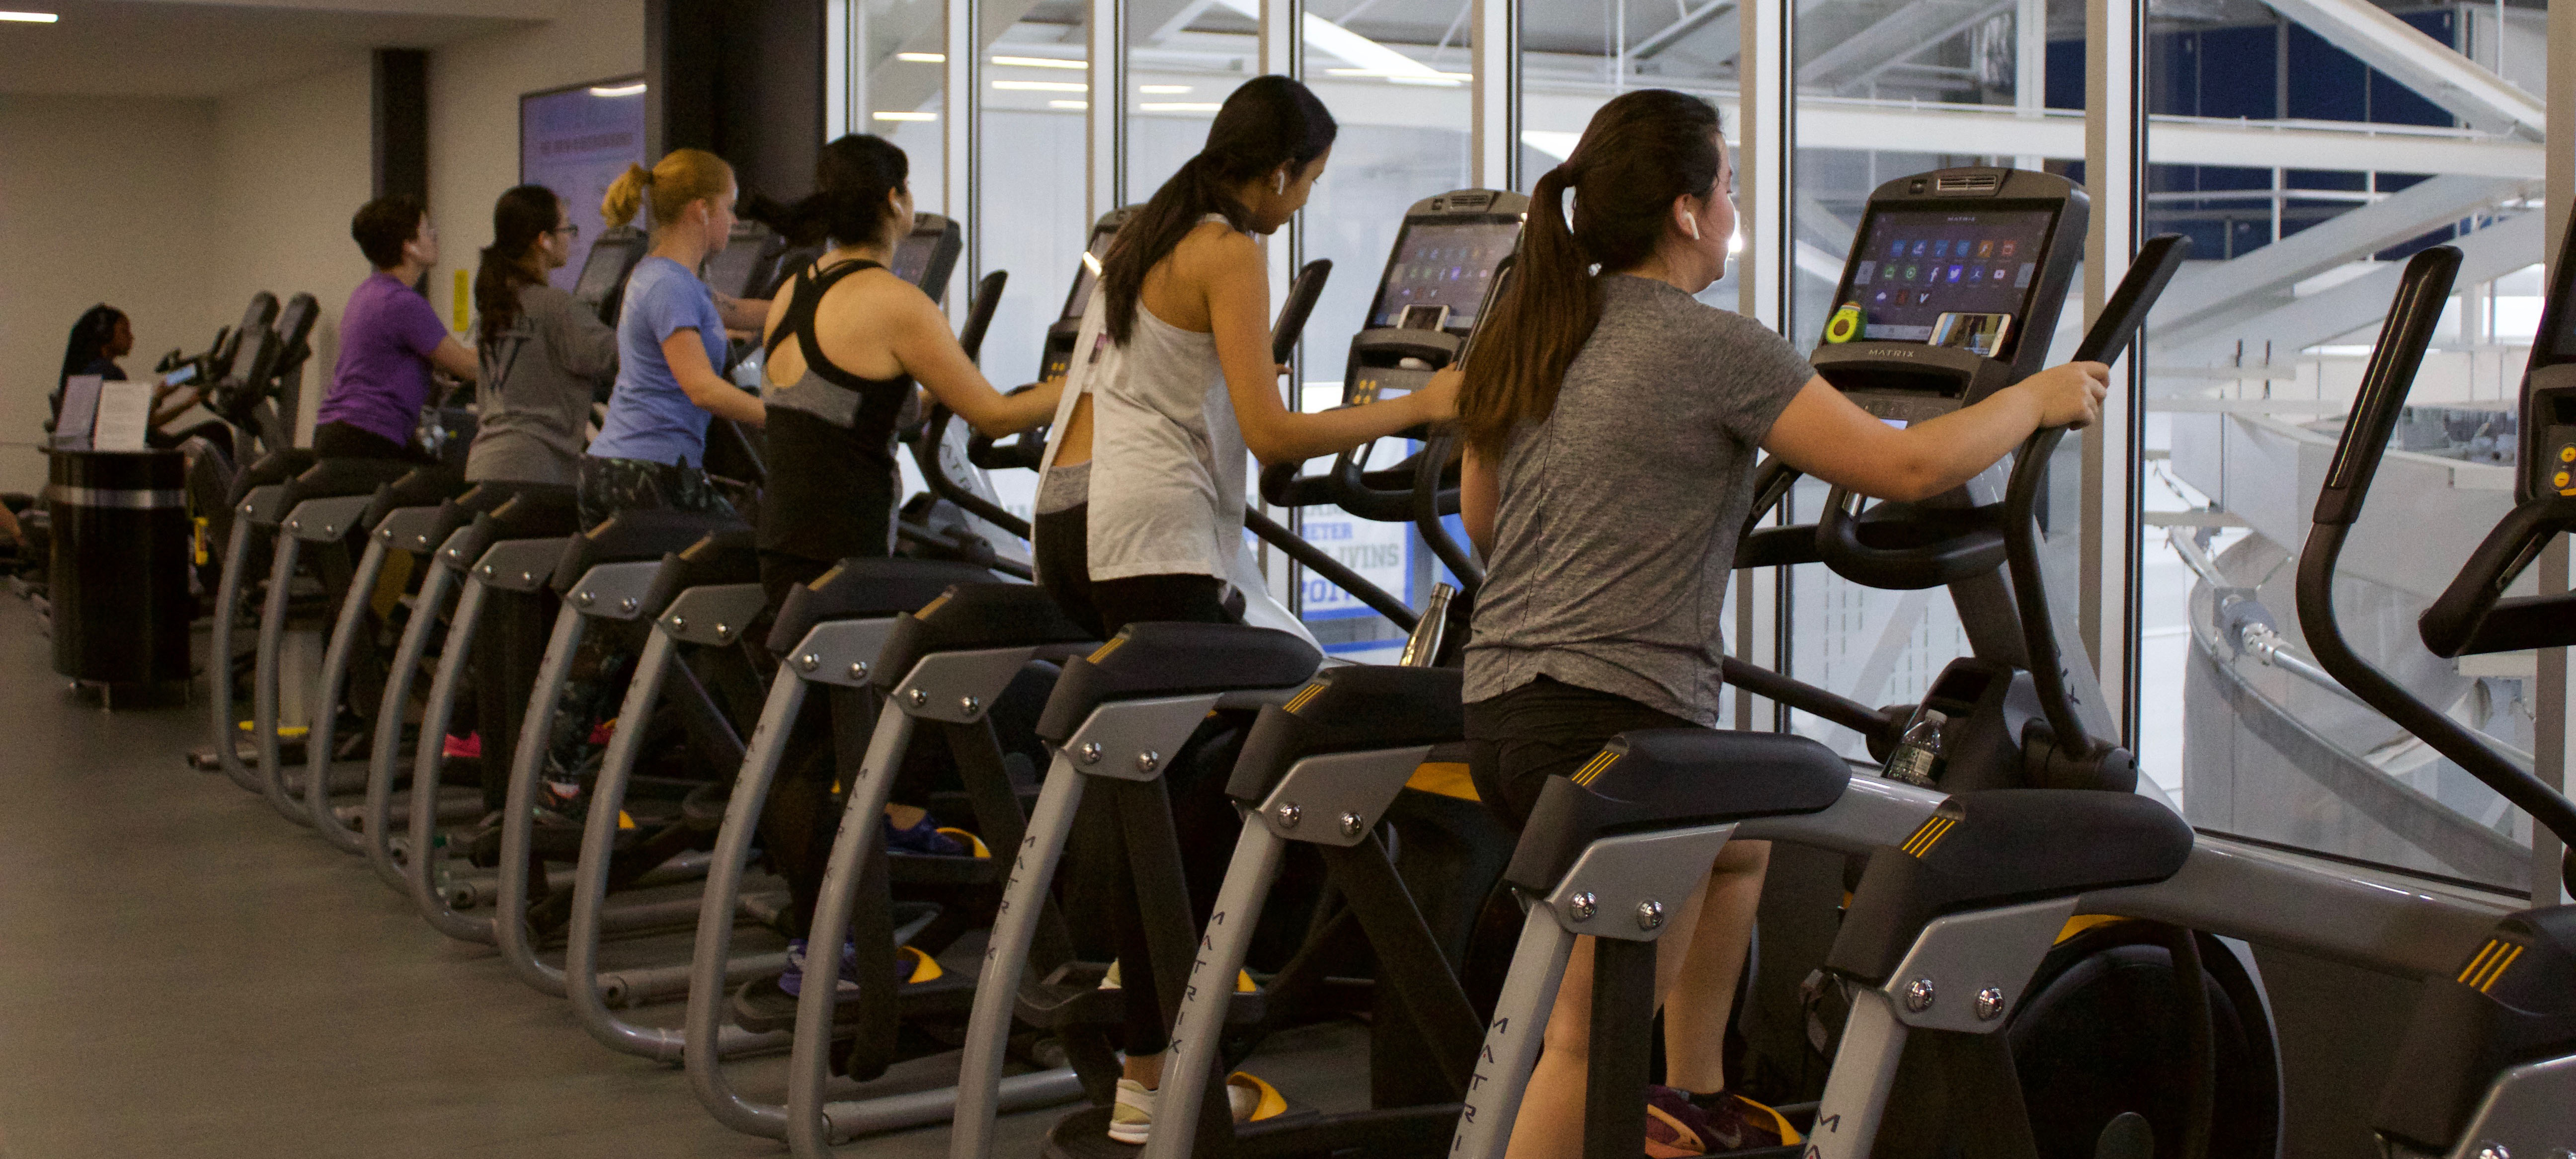 Each elliptical in the KSC is occupied with an exercising student. They are all facing away from the camera, focused.